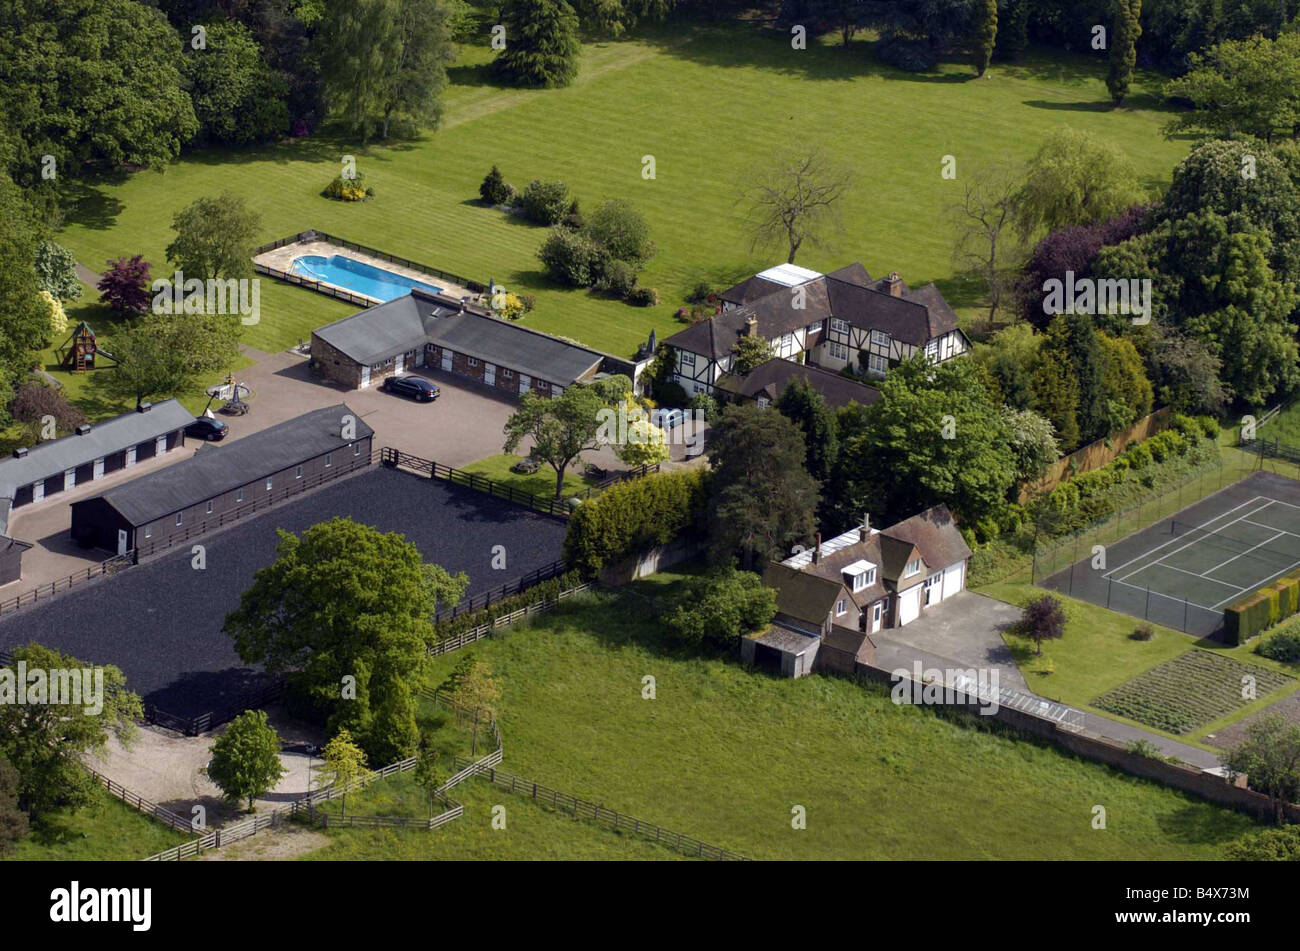 Angelina jolie mansion may 2005 the new luxury south - Princess risborough swimming pool ...